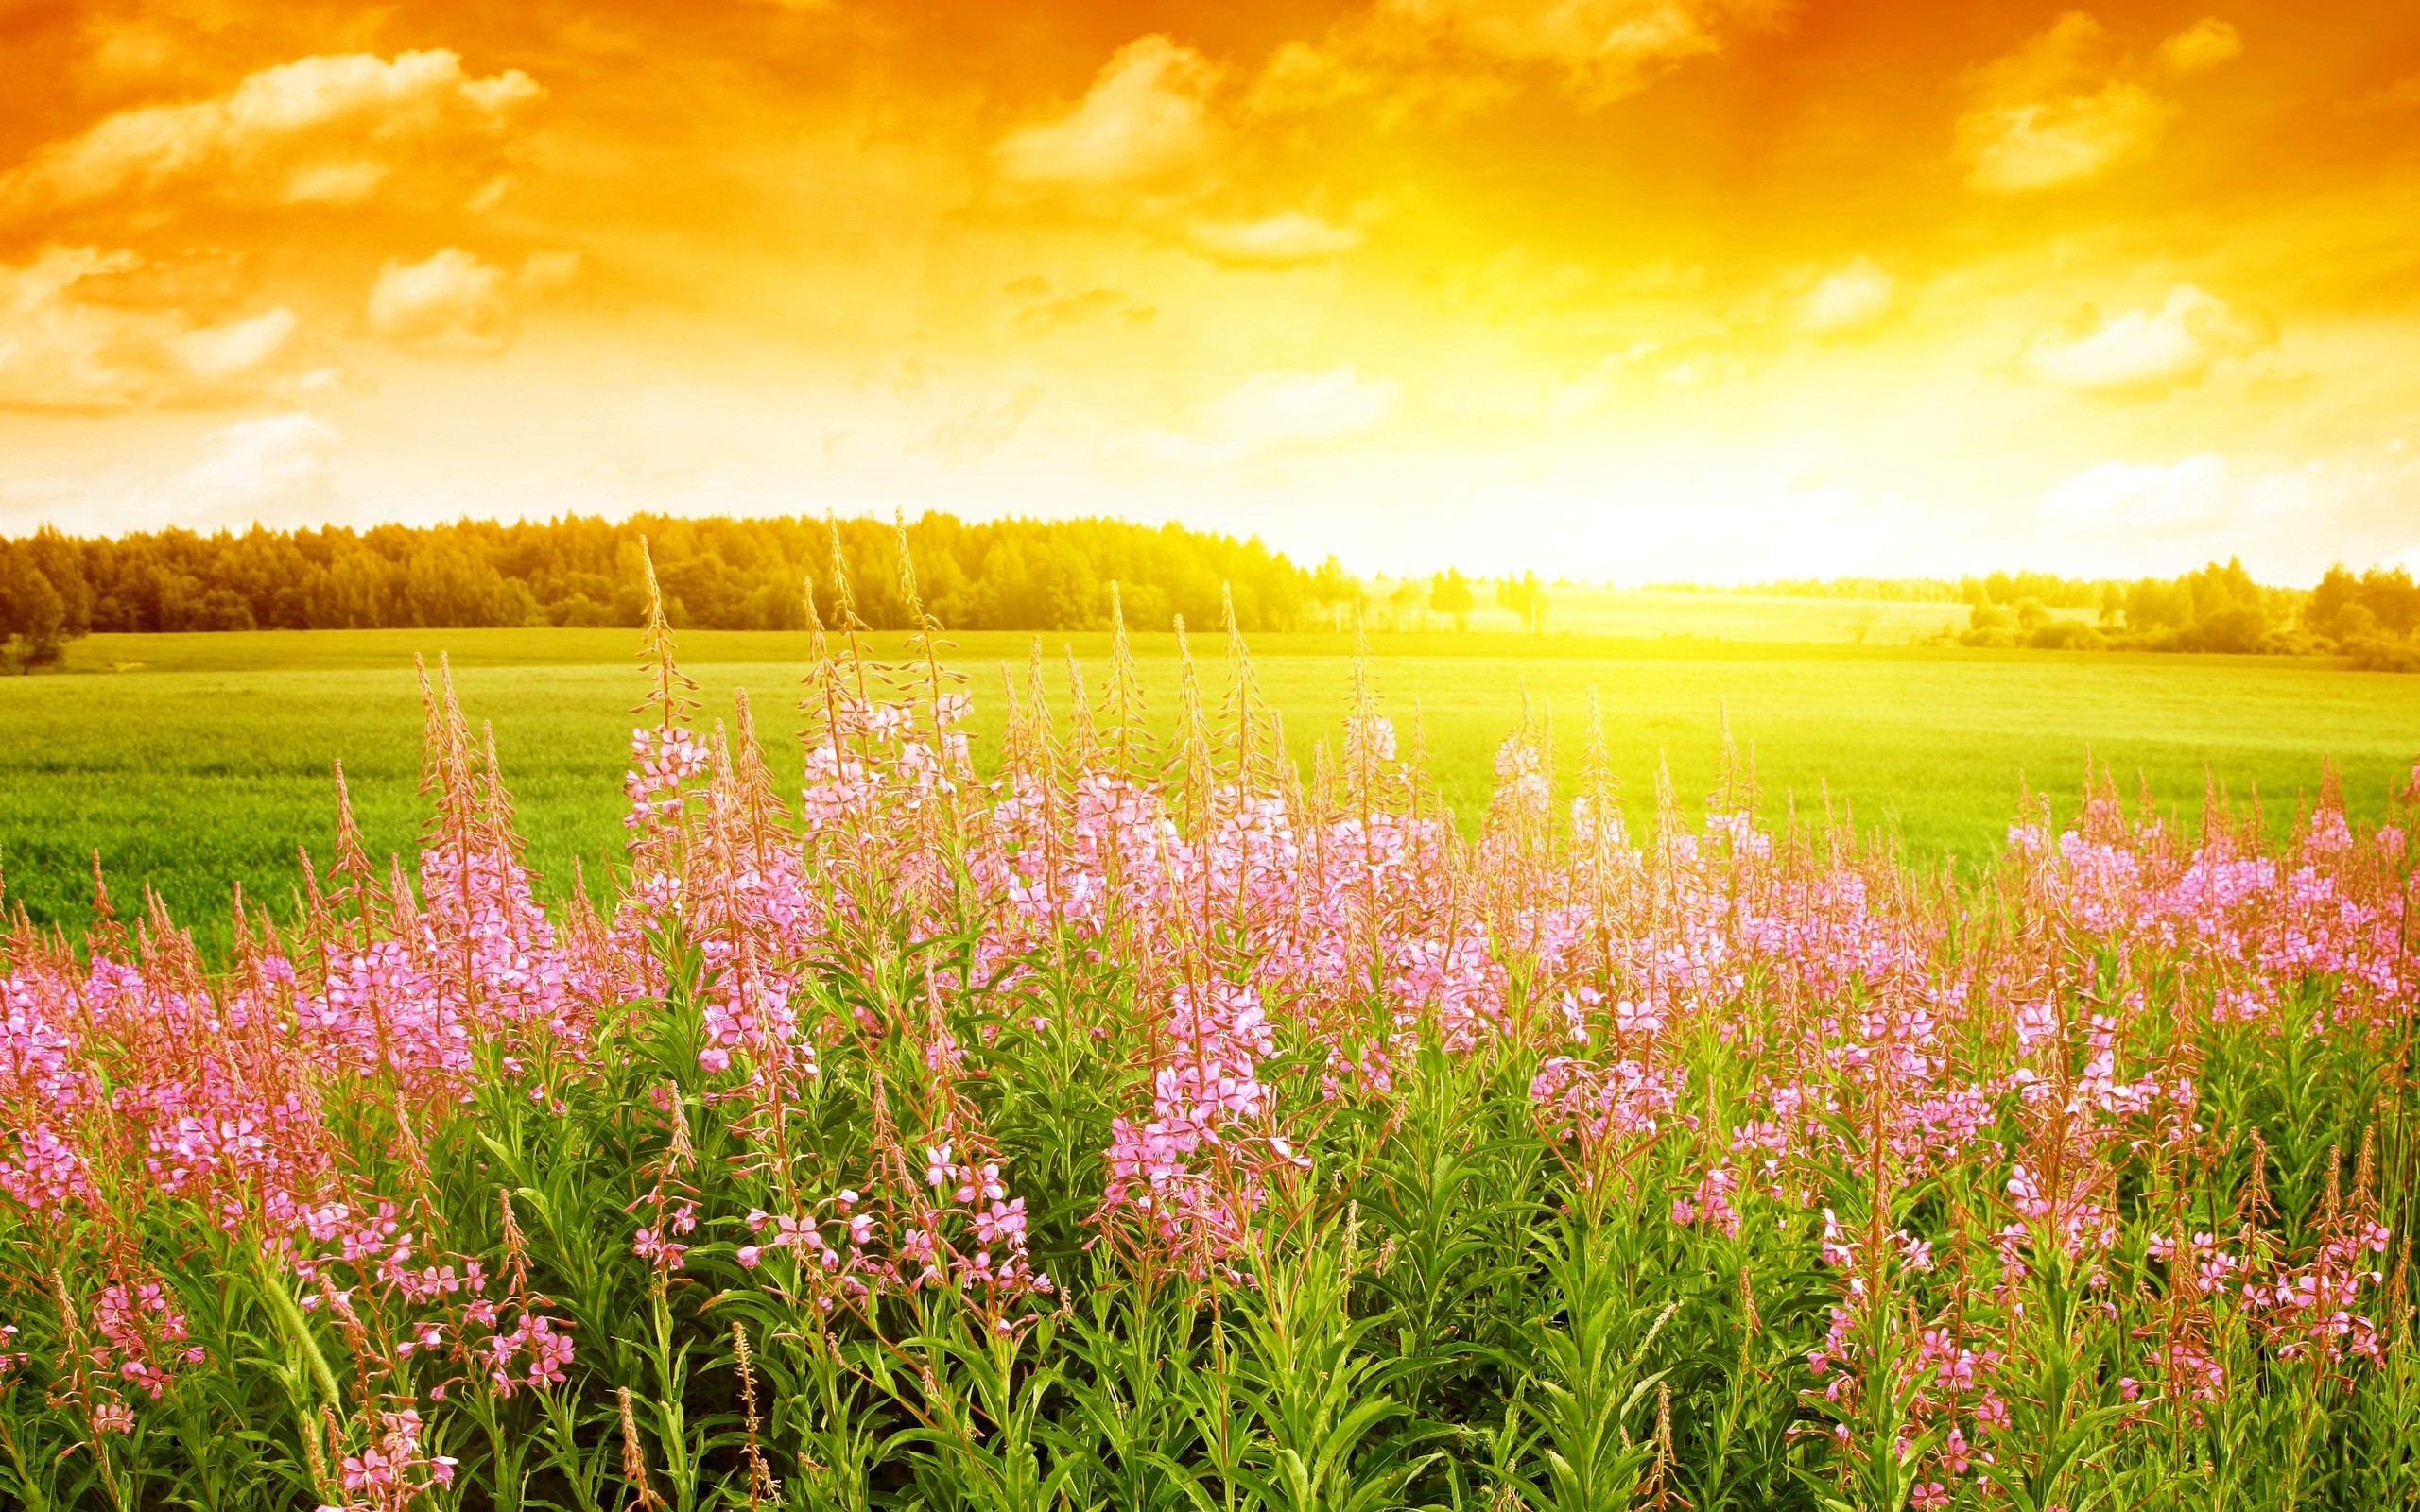 Spring Season Wallpaper Backgrounds HD Background 2560x1600